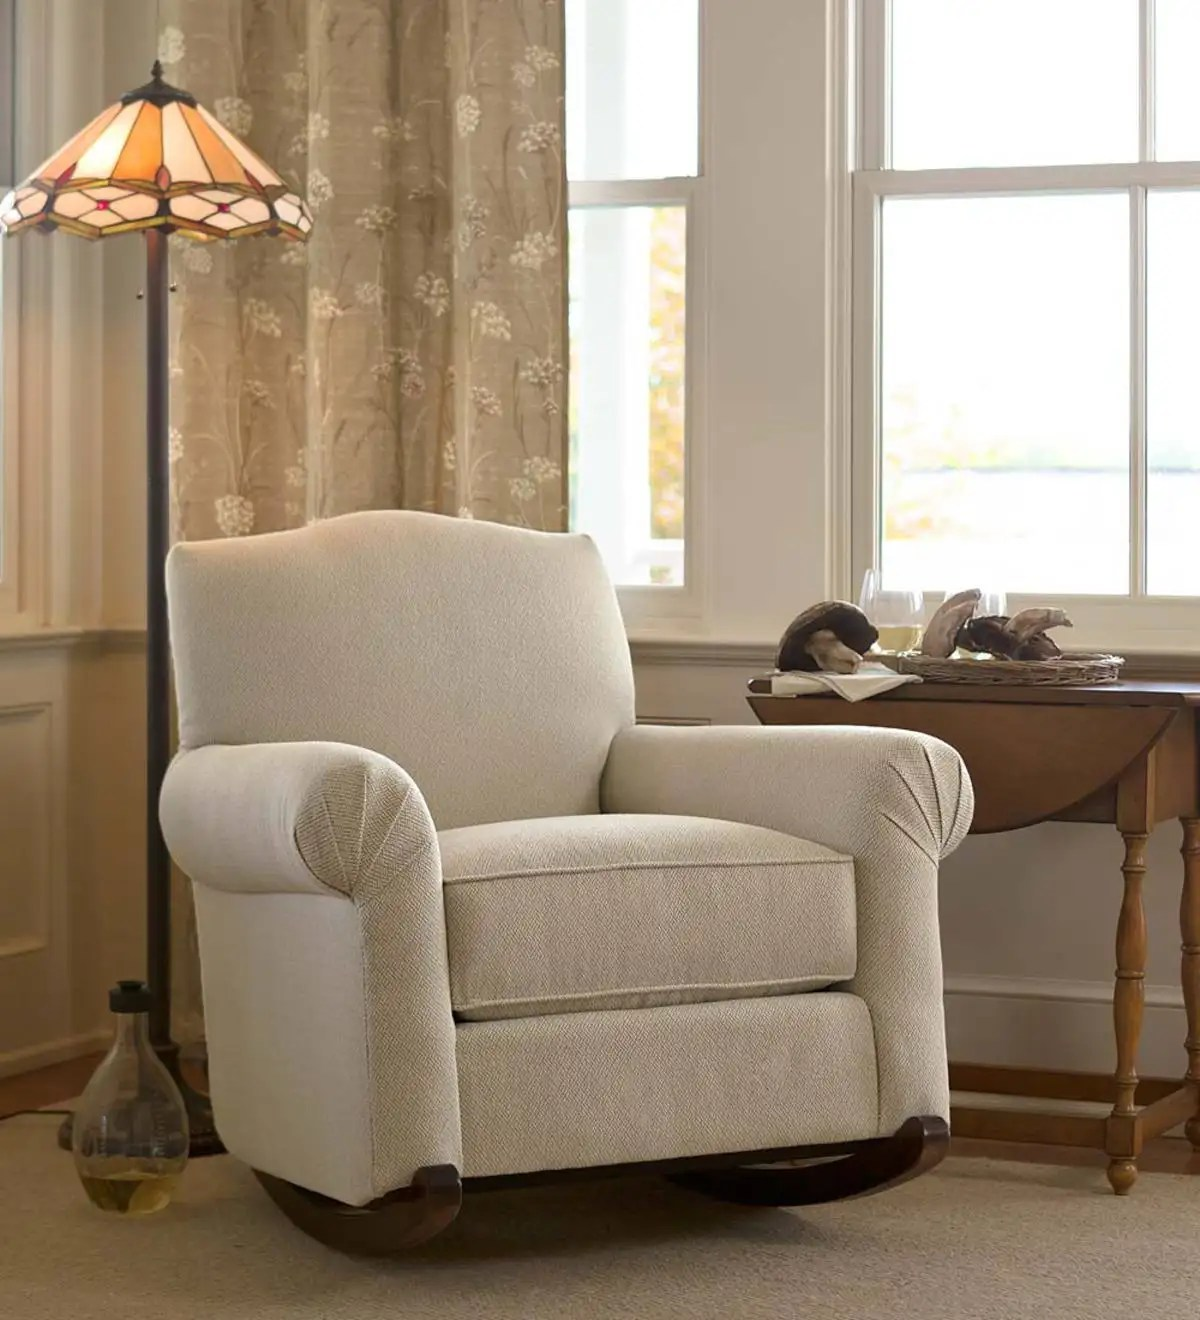 USA Made Bedford Upholstered Cottage Rocker Indoor